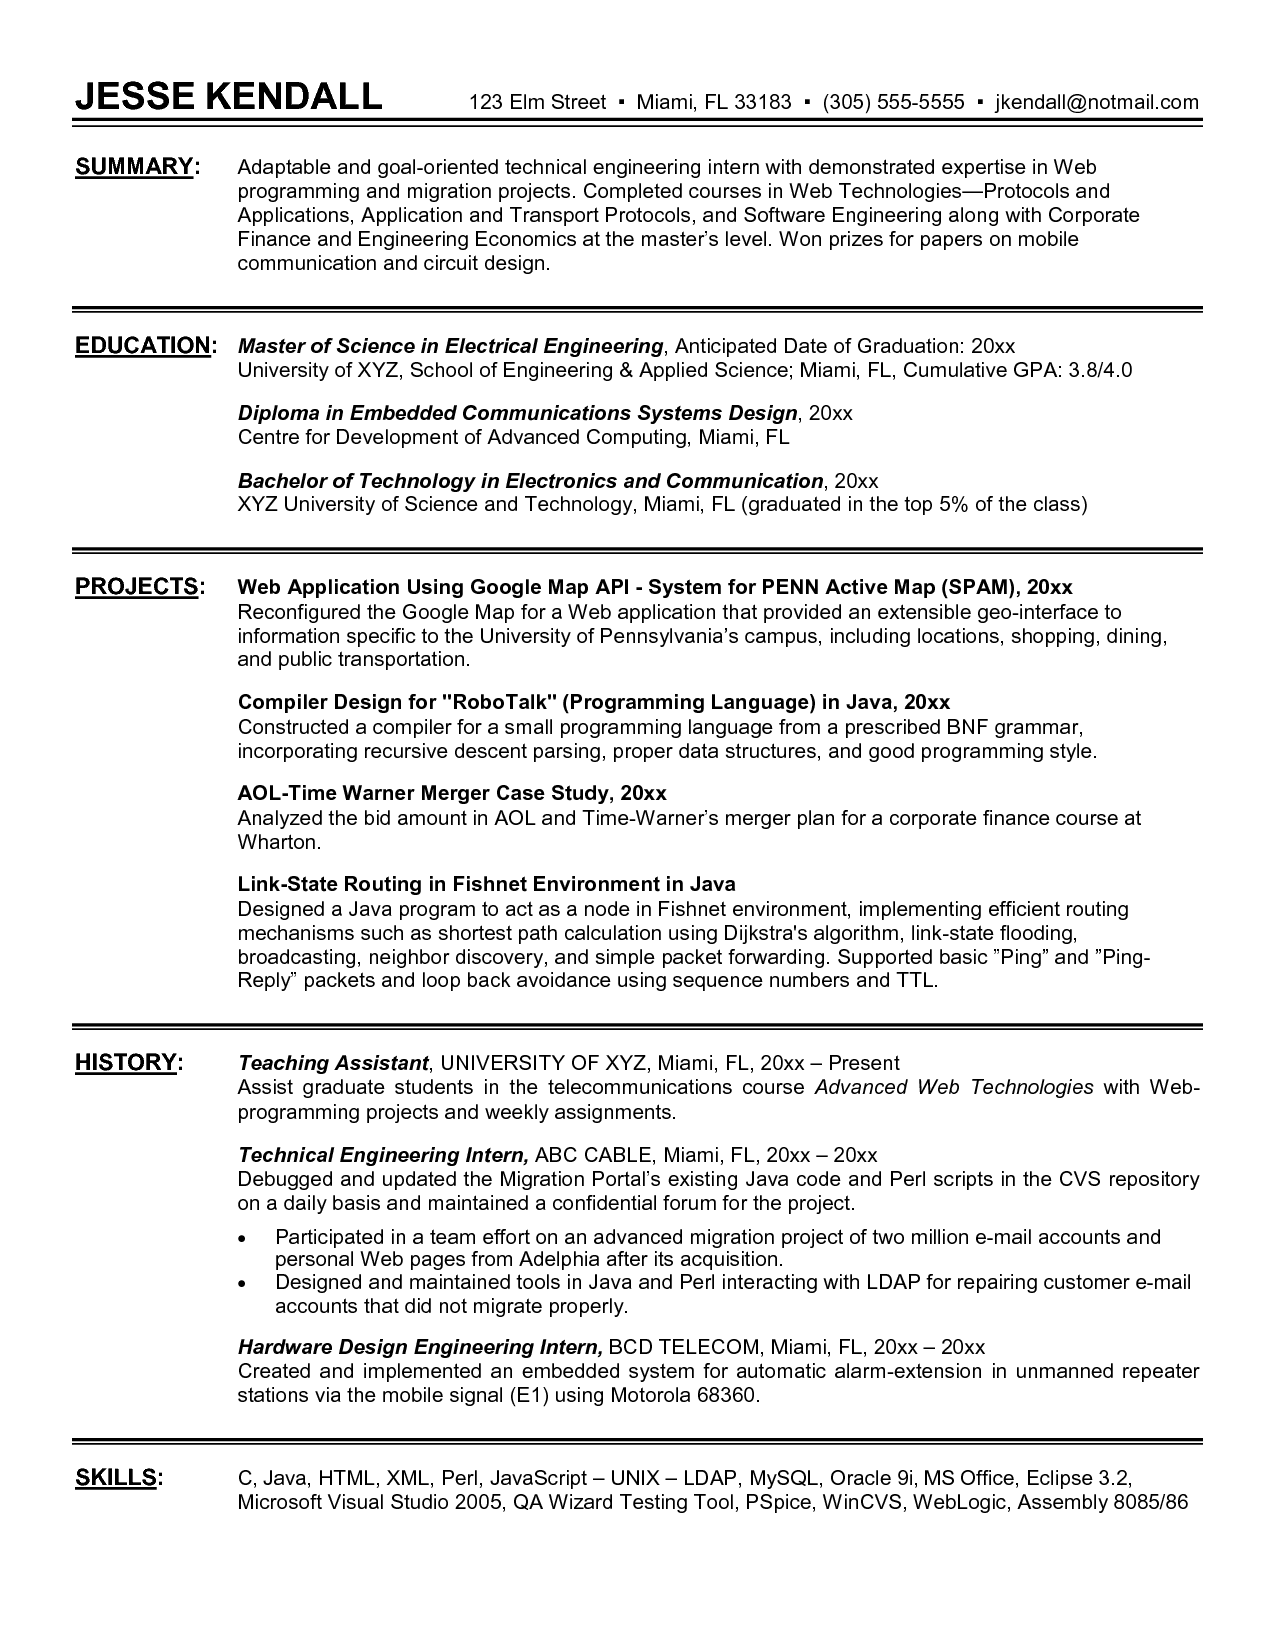 Objective In Resume For Internship In Computer Engineering